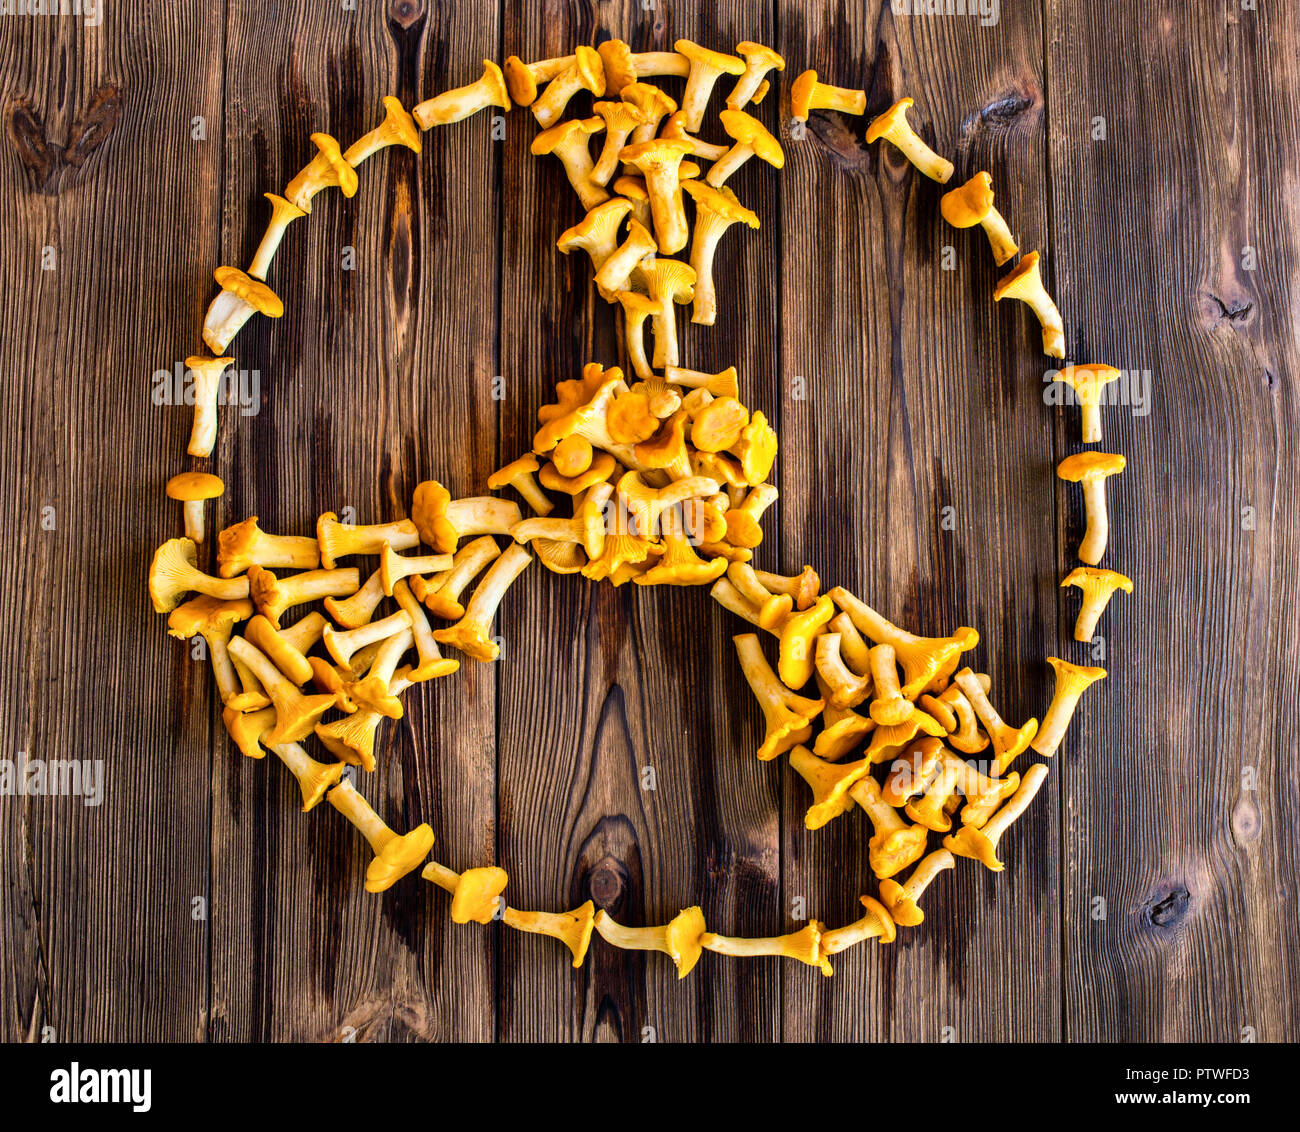 Radiation sign mushrooms chanterelles on a wooden background, fungi and radiation, fungus - Stock Image